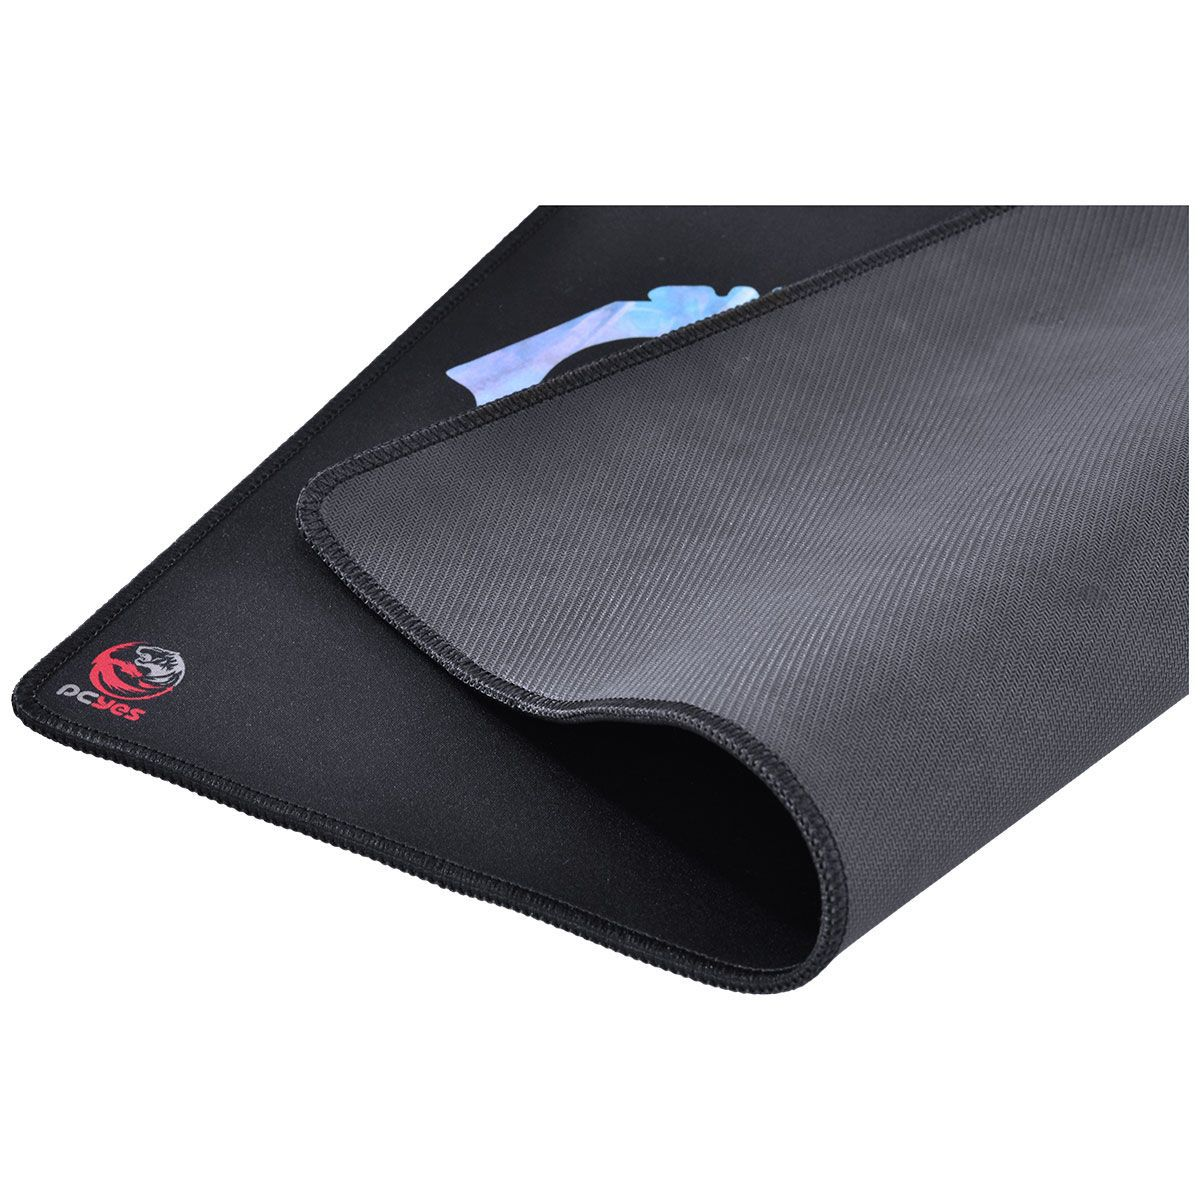 MOUSE PAD FPS KNIFE 500X400MM - FK50X40